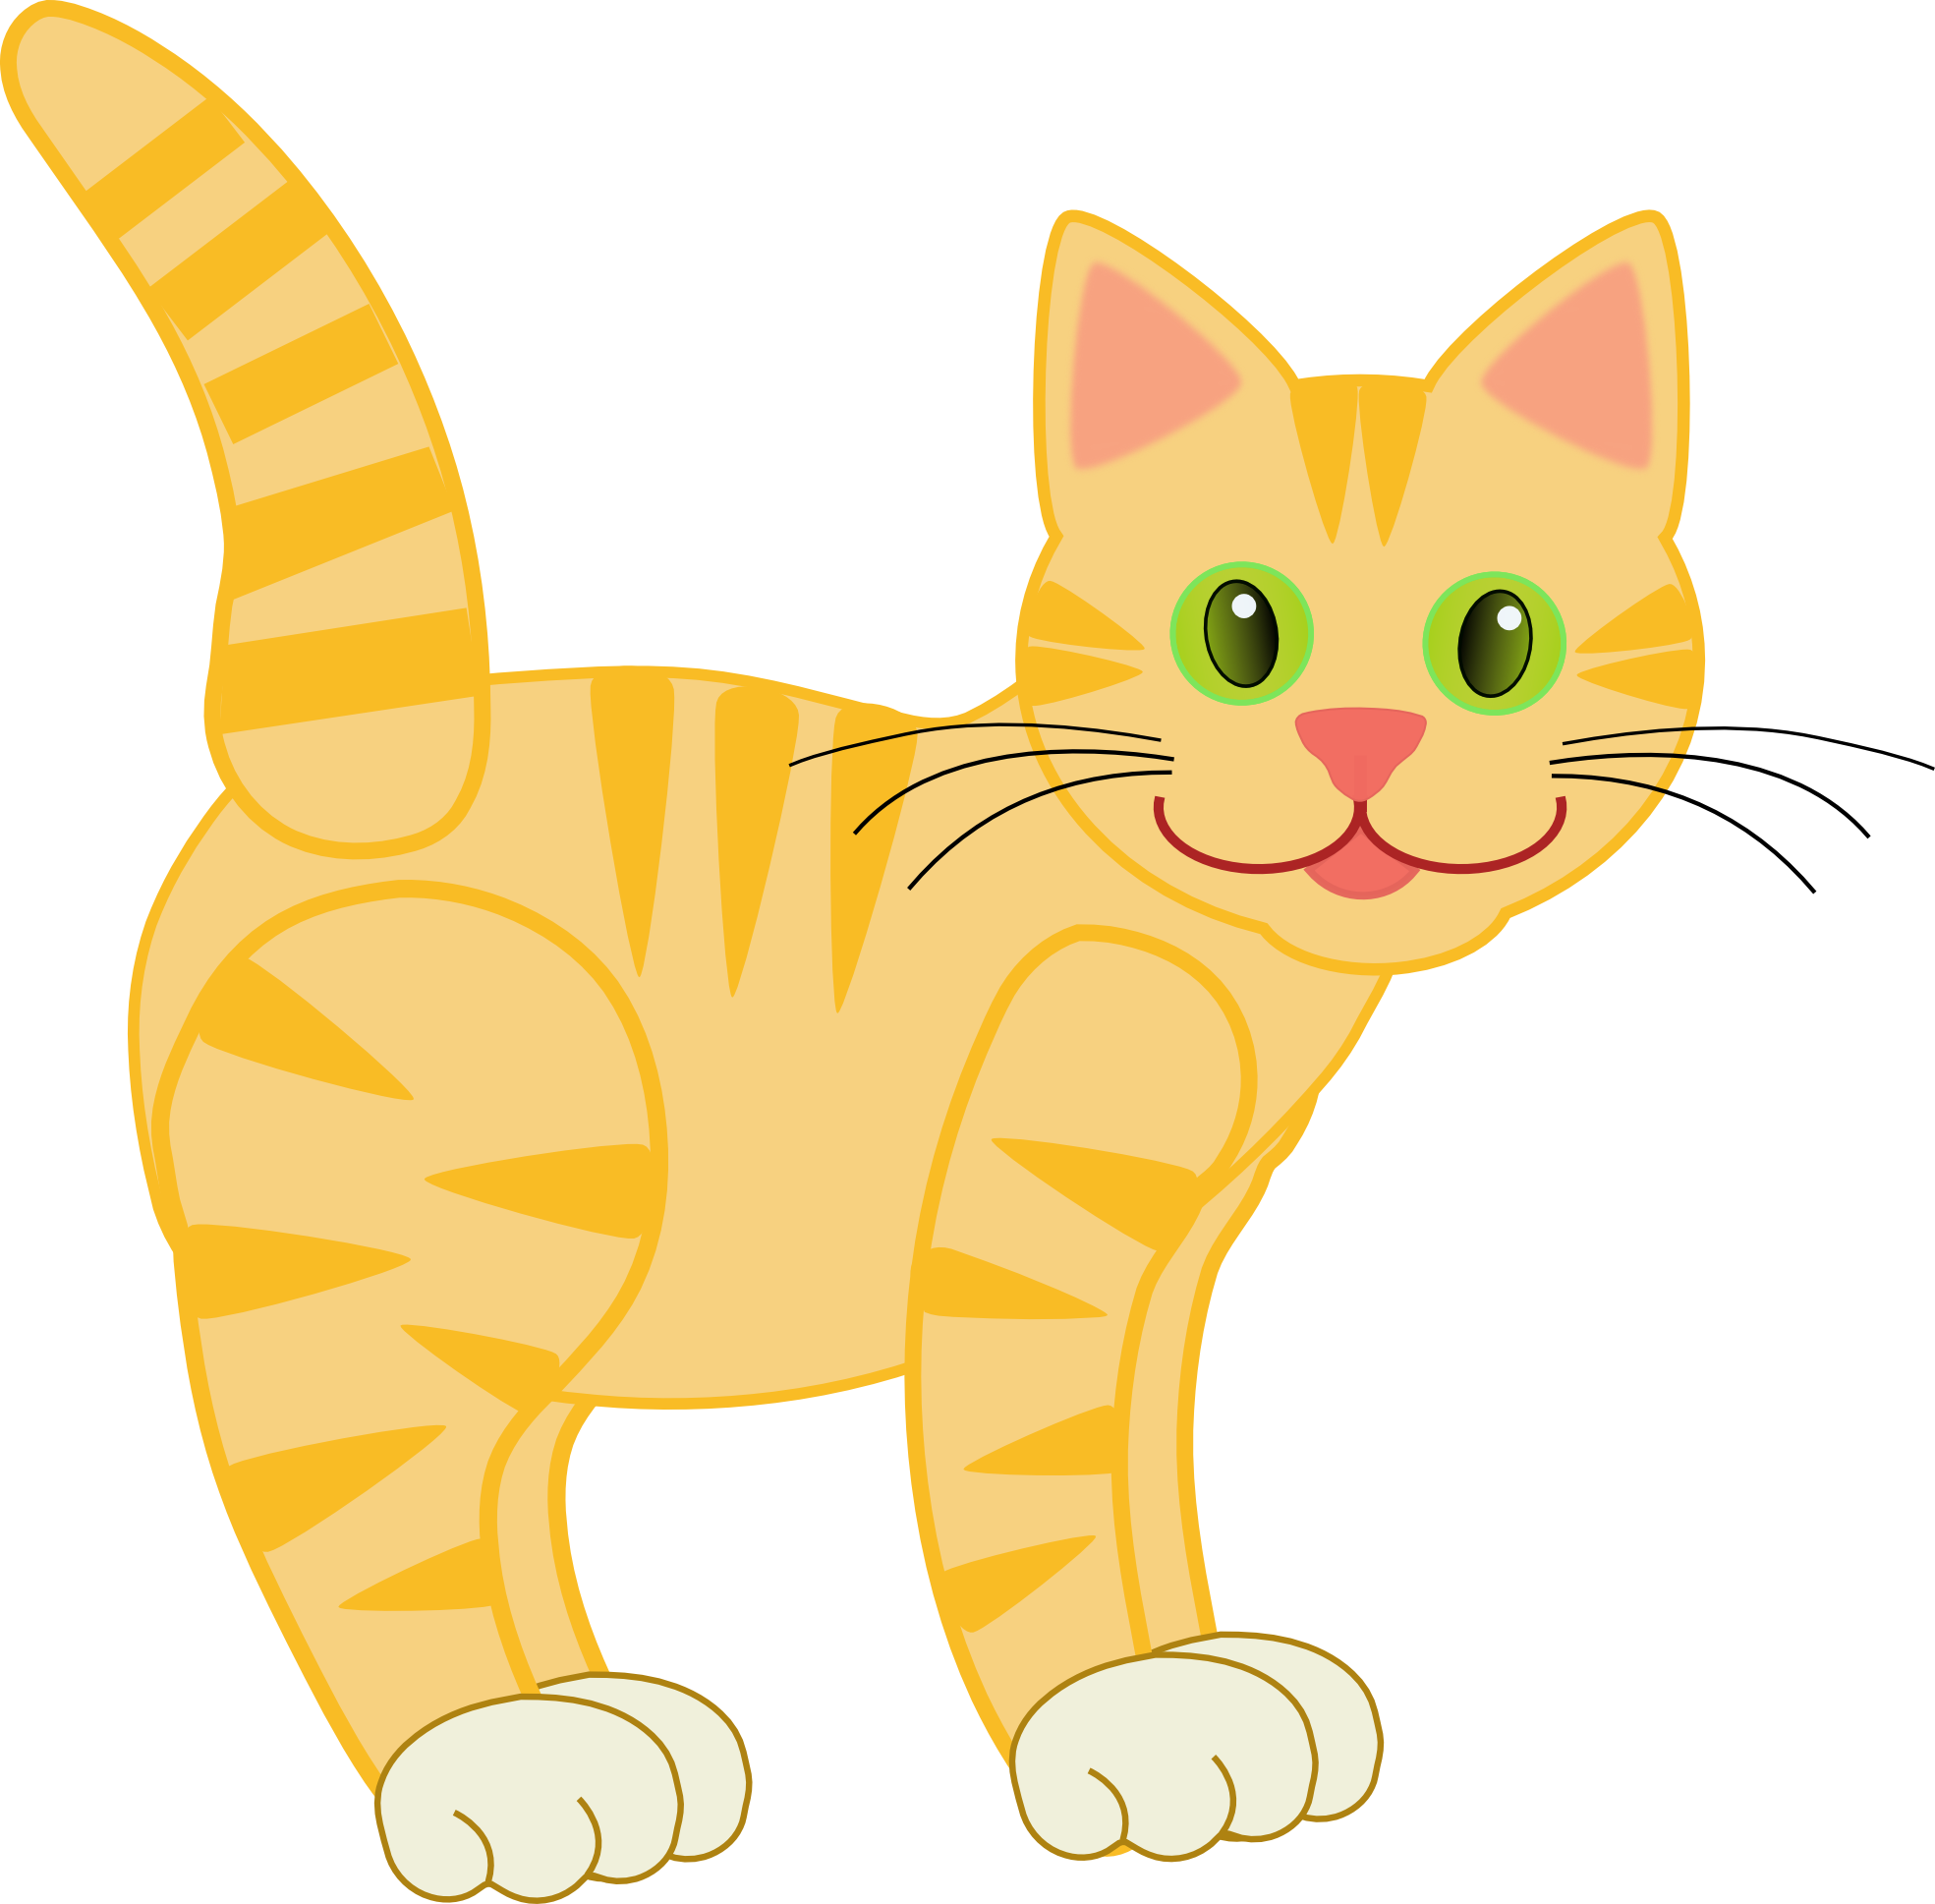 Feeding the cat clipart freeuse stock Clip art version2 yellow tiger cat | 15.10.8 | Pinterest | Clip art ... freeuse stock